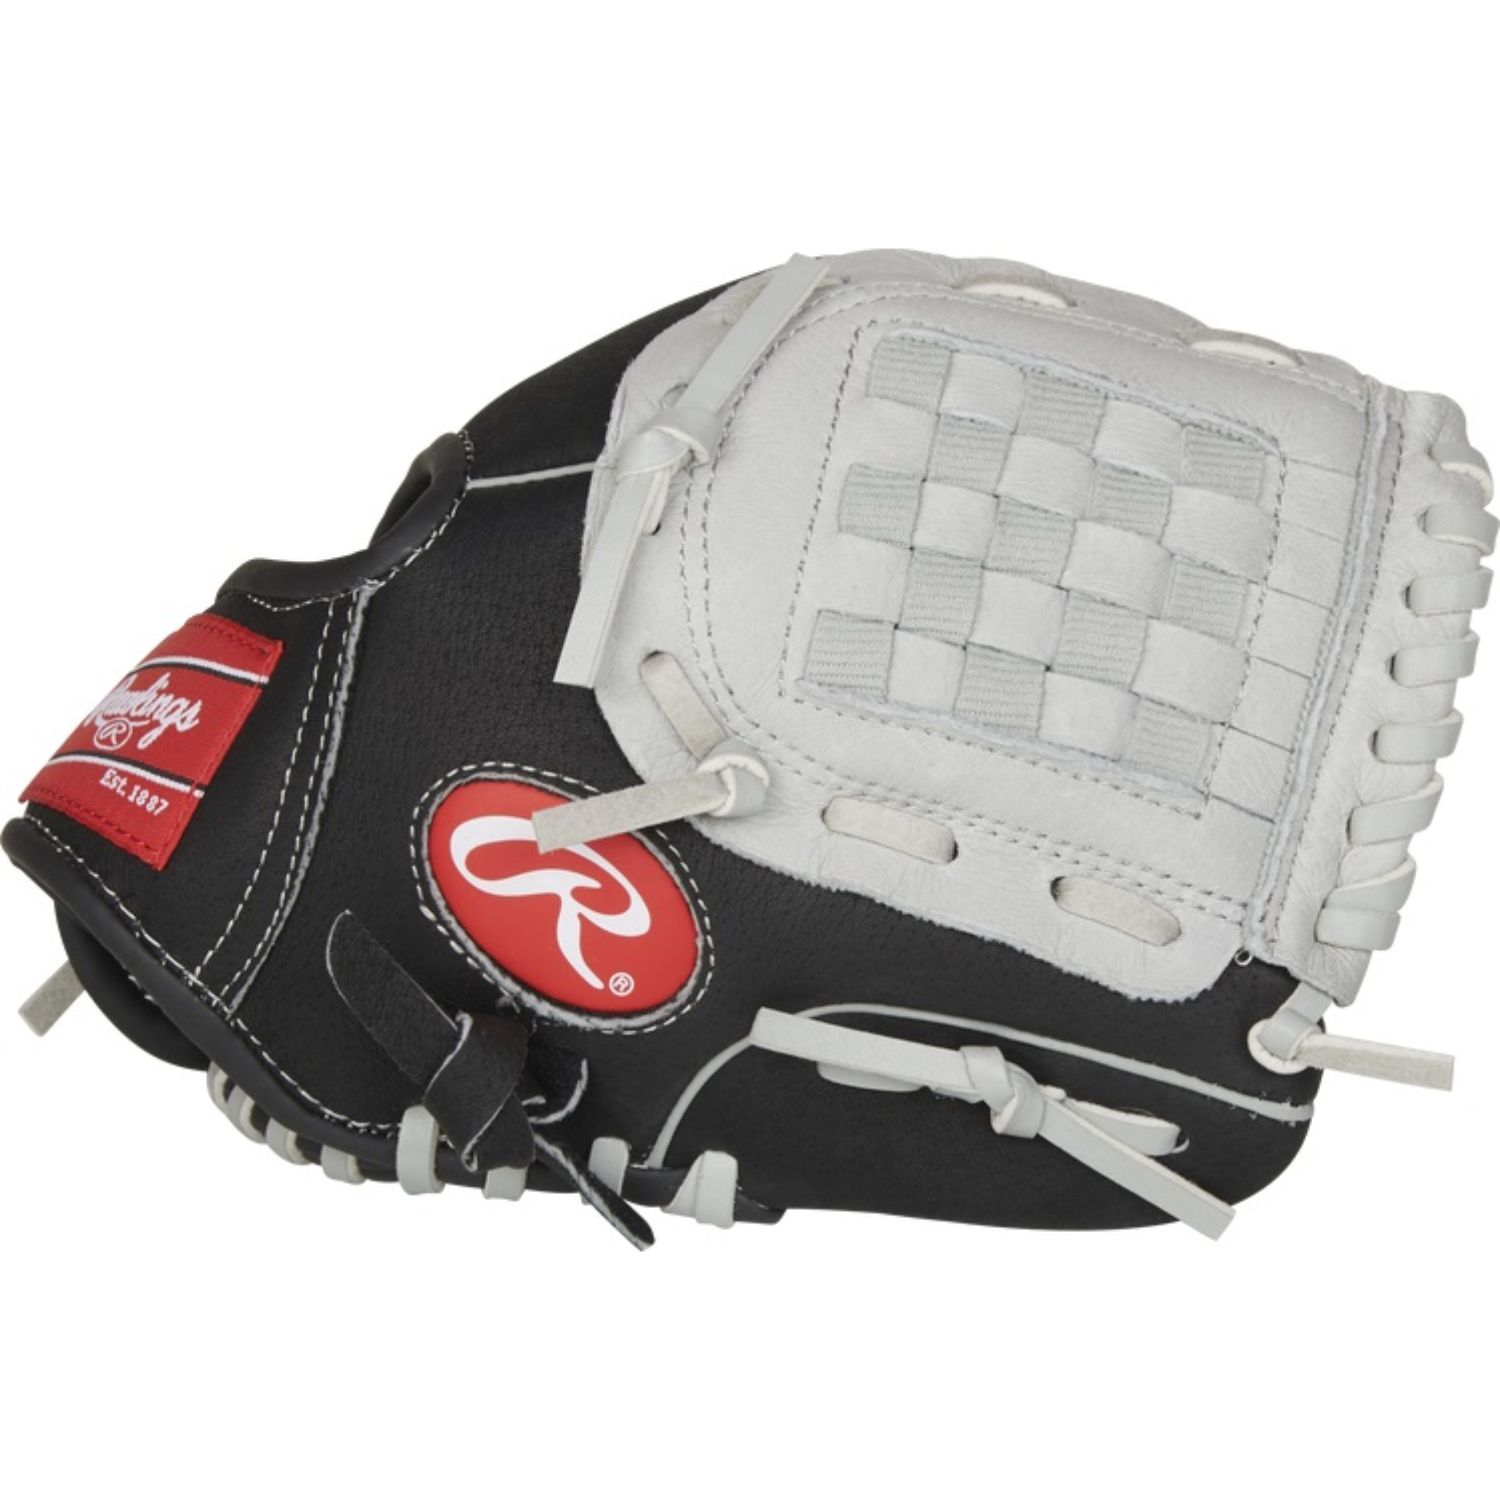 Rawlings 9.5 In Sure Catch Youth Infield Pitchers Glove RH